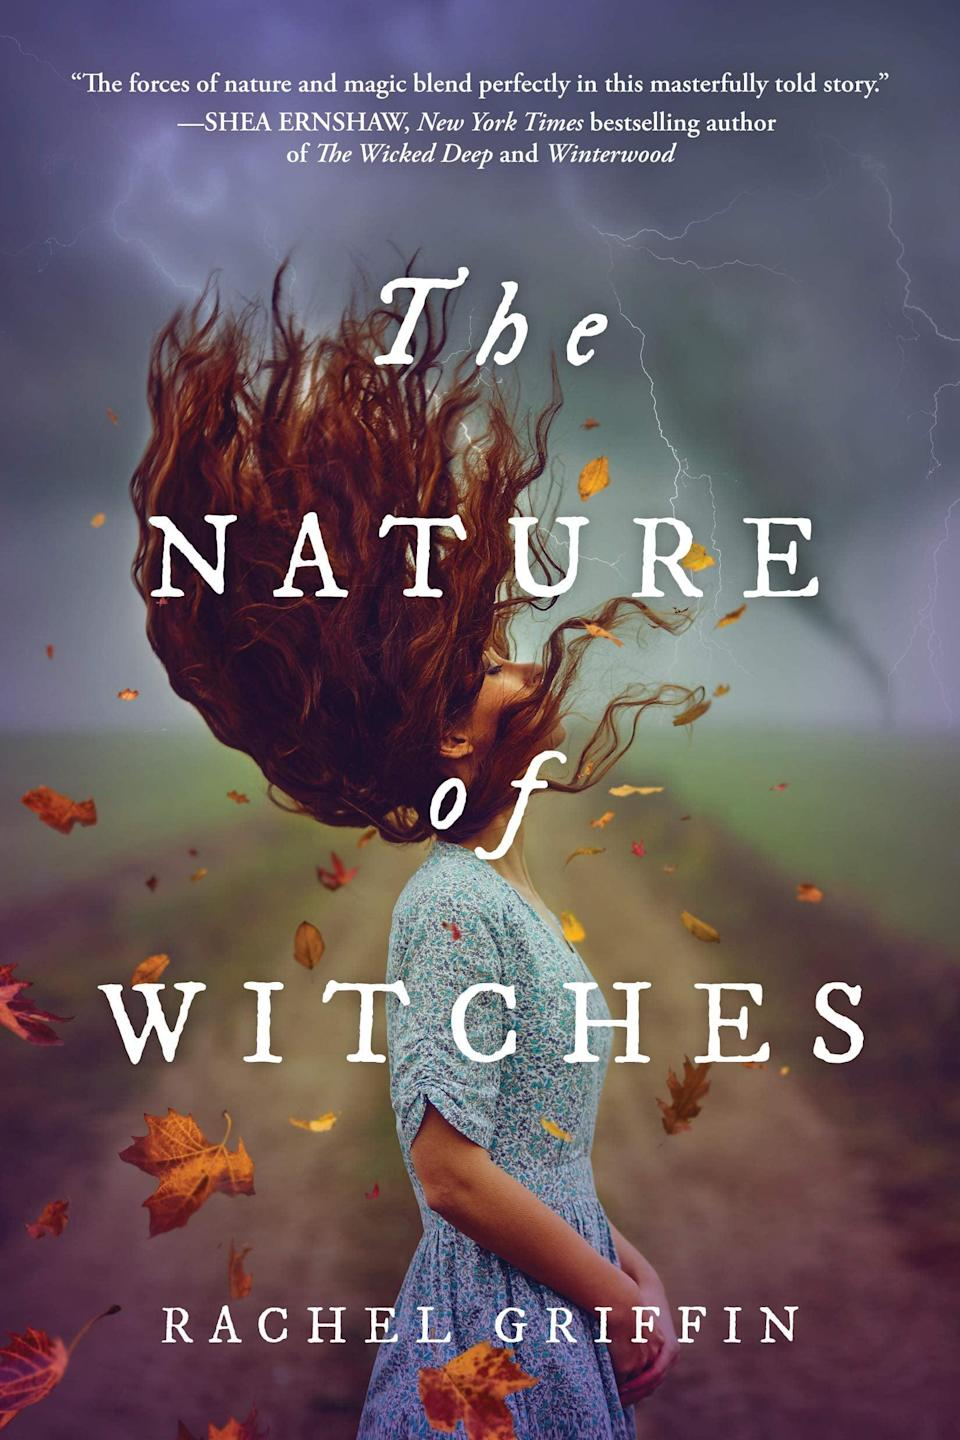 <p>There's a powerful parable at the heart of Rachel Griffin's lyrical novel <span><strong>The Nature of Witches</strong></span>: If we don't take care of our planet, we're going to lose it. No one knows that better than Clara, an Everwitch whose powers are tied to the changing seasons, for better or worse. </p> <p><em>Out June 1</em></p>